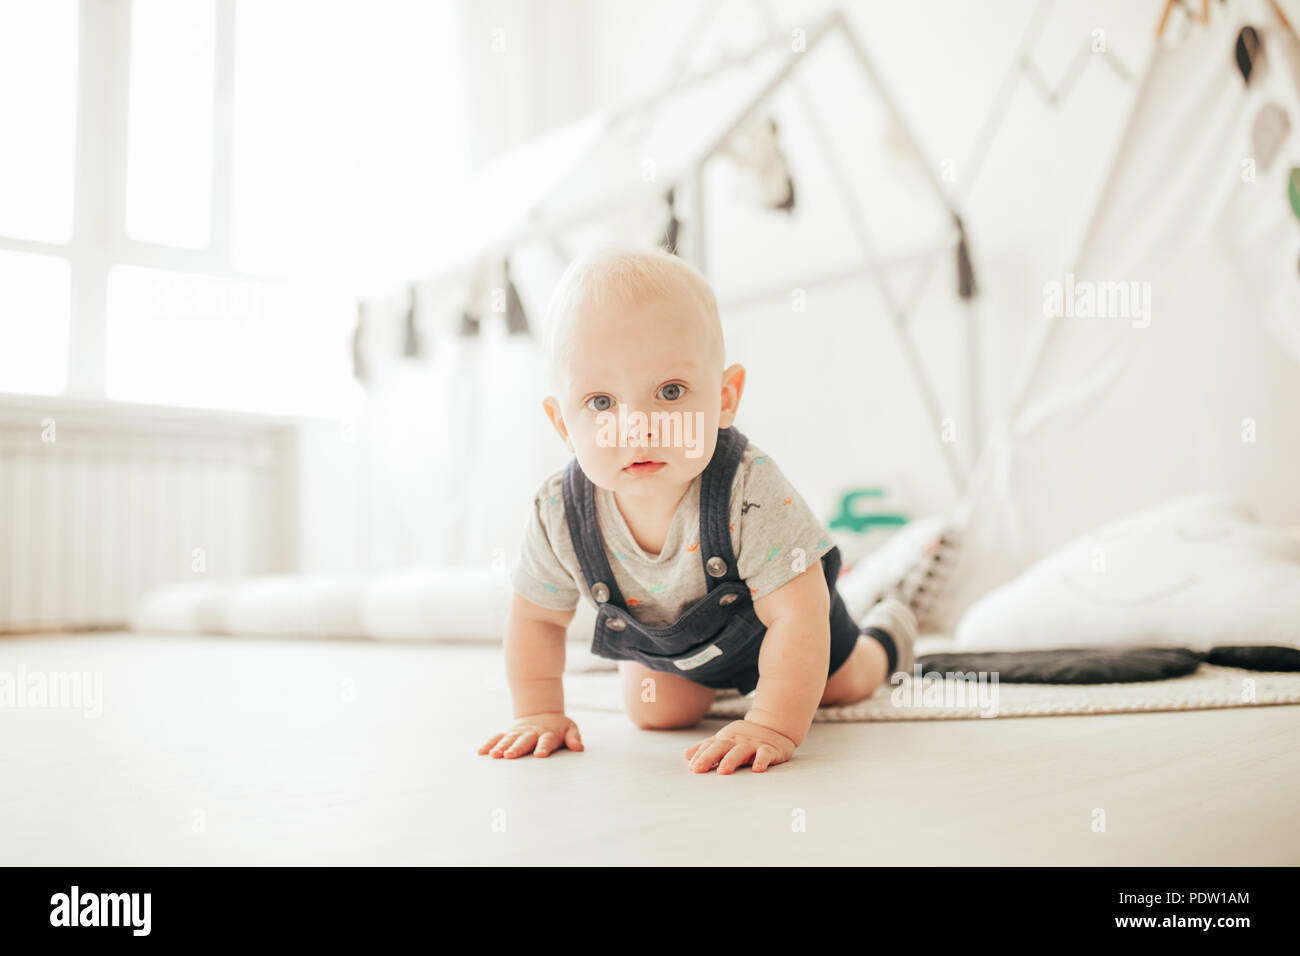 Toddler in rompers and t-shirt crawls on floor in room against window. - Stock Image